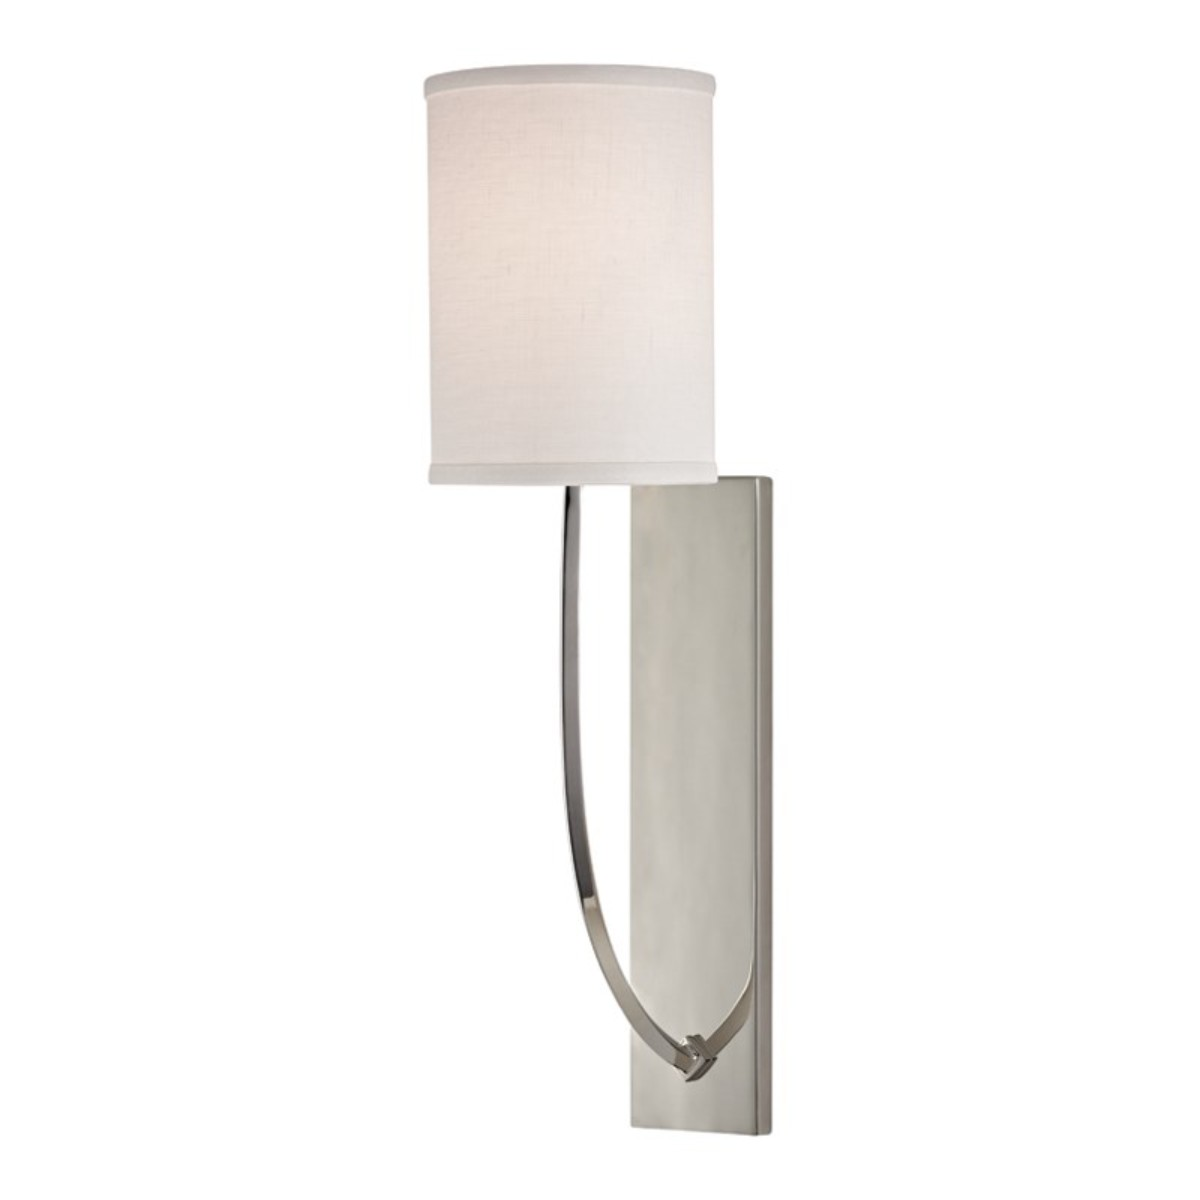 Hudson Valley | Colton Wall Light | Polished Nickel